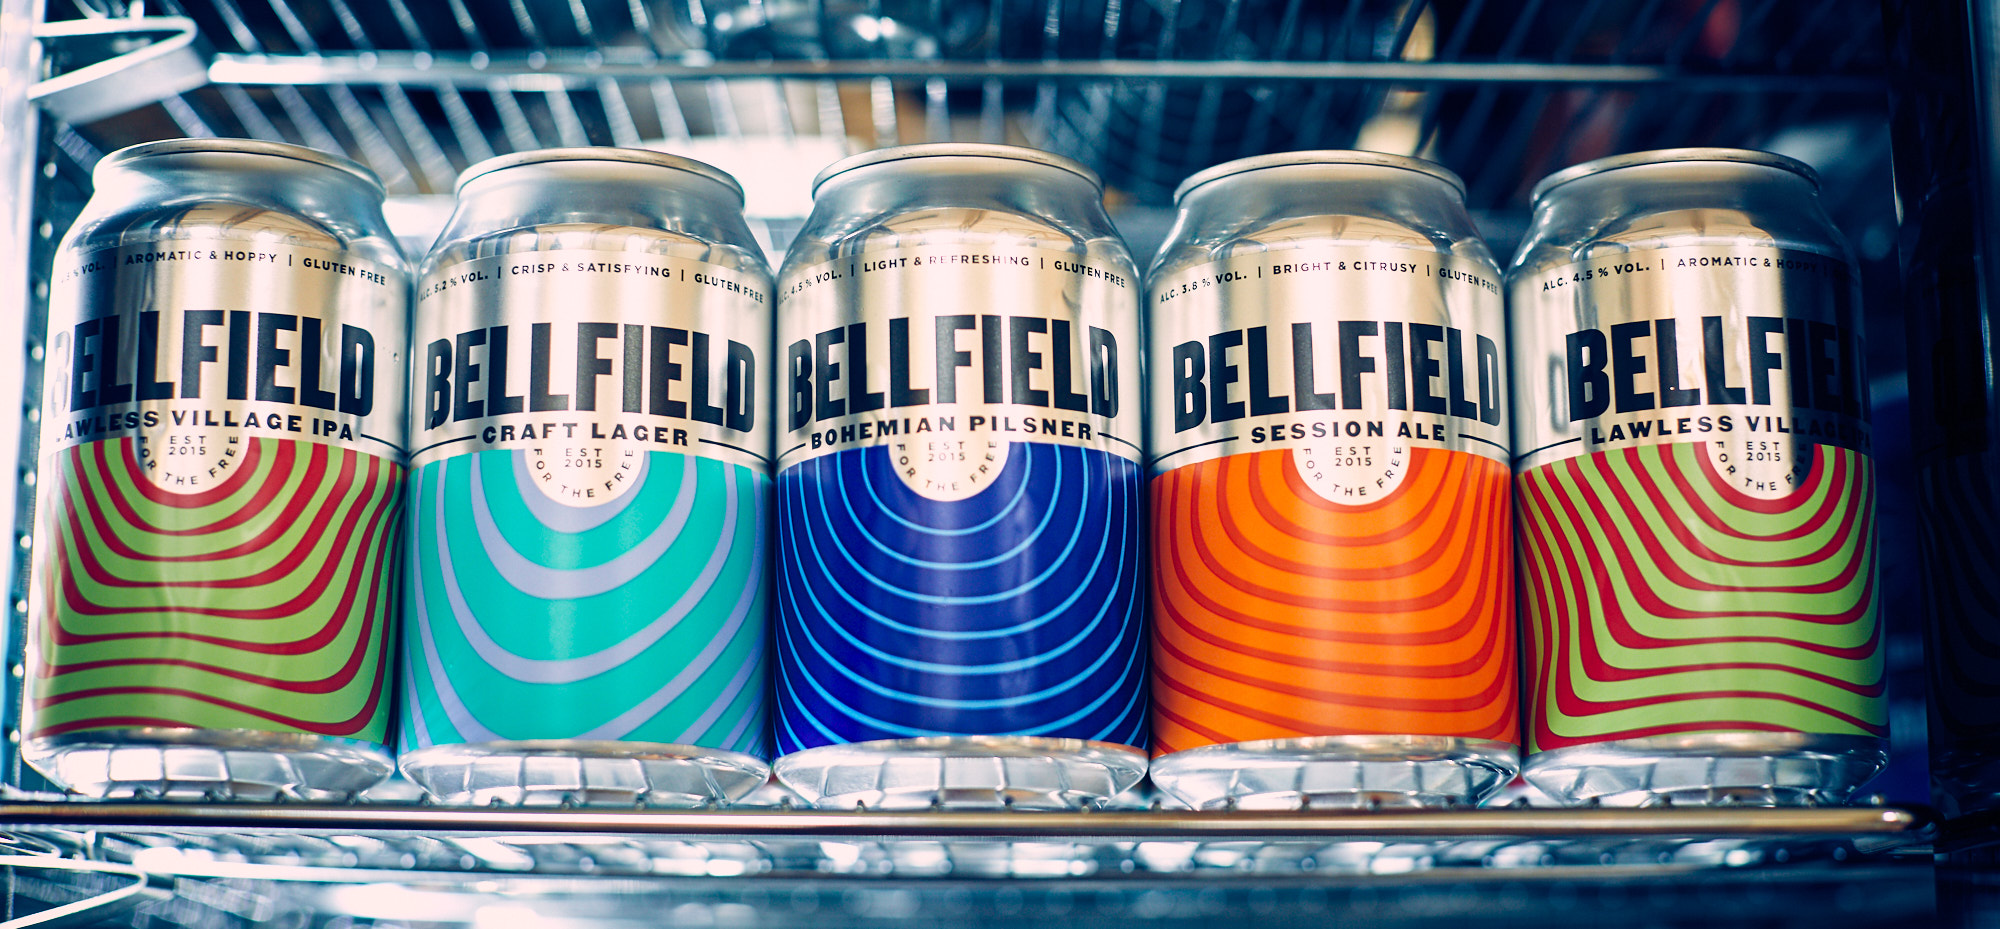 Pictures of beer cans- Food and Drink News Scotland